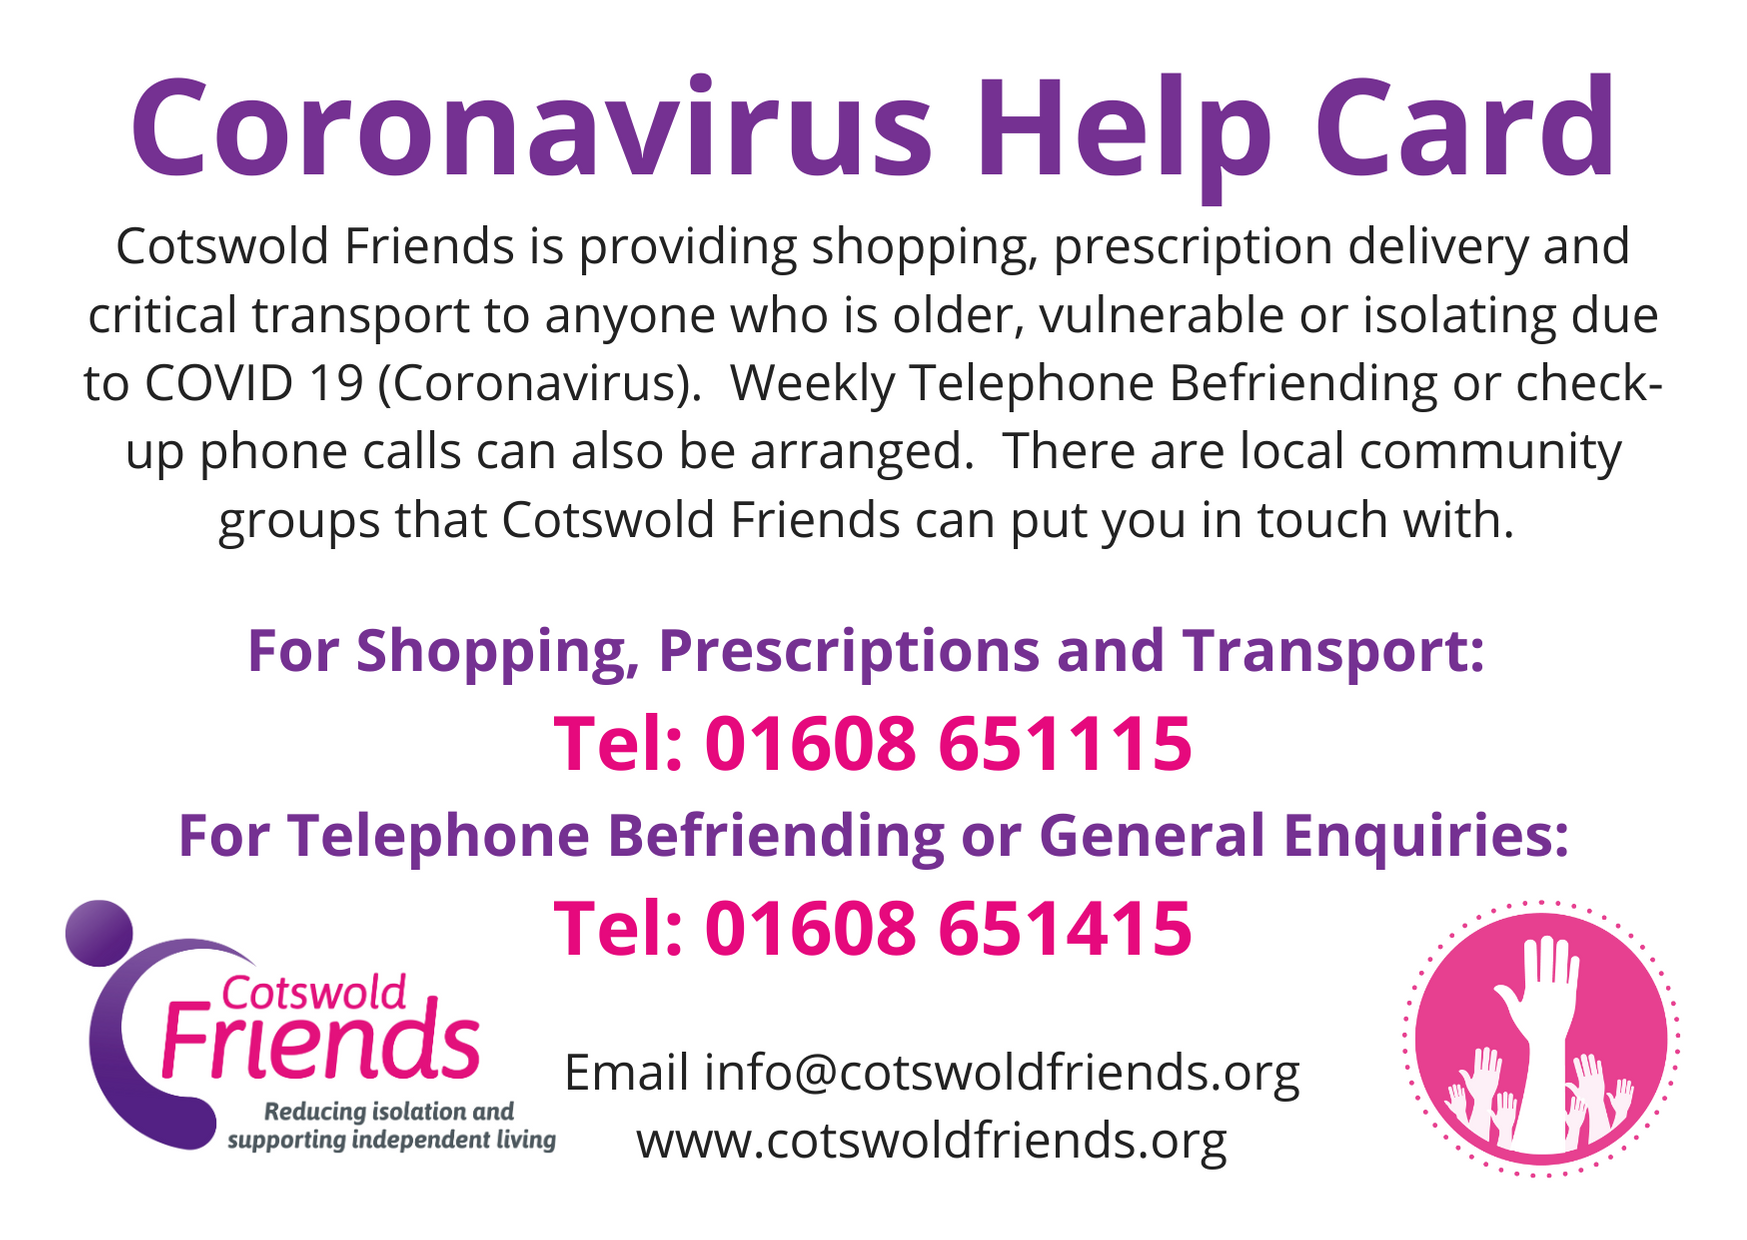 20,000 Coronavirus Help Cards Distributed